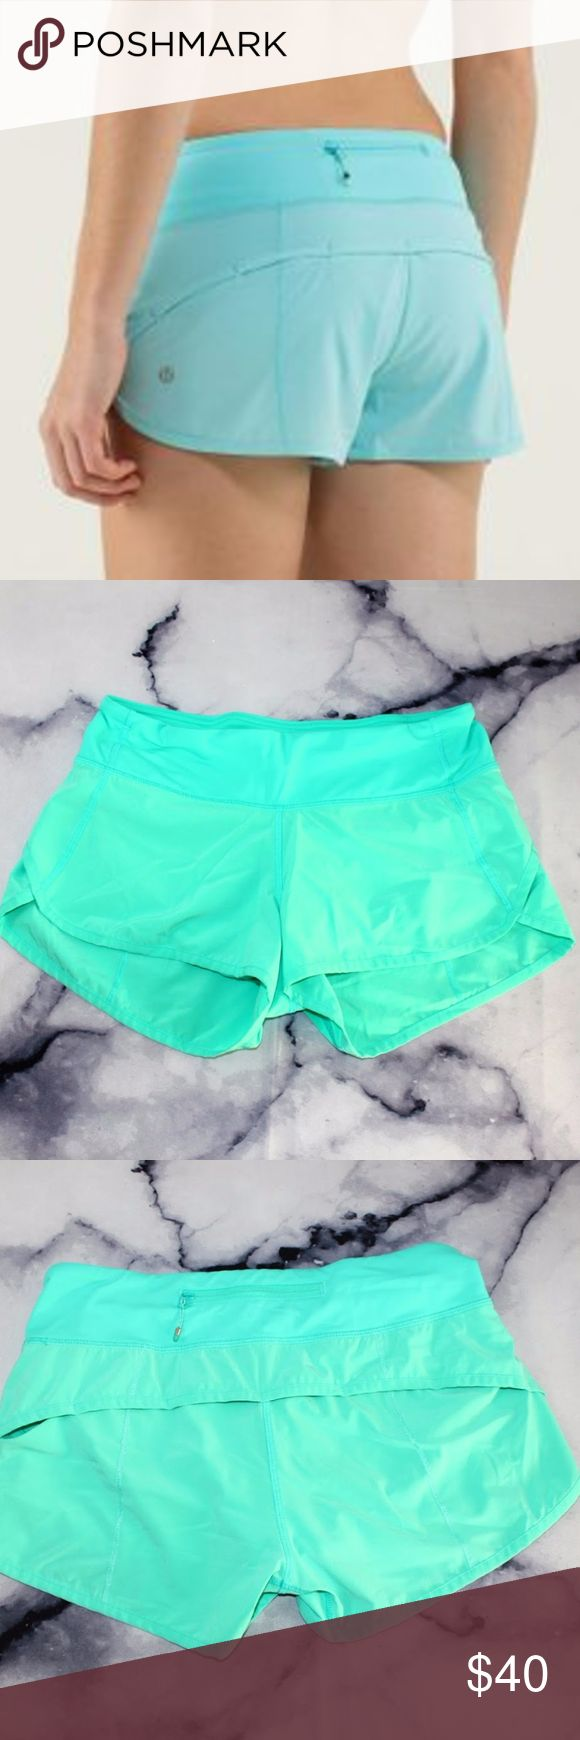 Lululemon Speed Short Sea Mist Tiffany Blue Teal 4 CONDITION: USED STRETCH: 4 way stretch, but it is still a true 4. FLAWS: none. No piling in crotch as shown. Feel free to send me an offer! You can also bundle your likes and I'll send you an offer with a bangin' discount! lululemon athletica Shorts